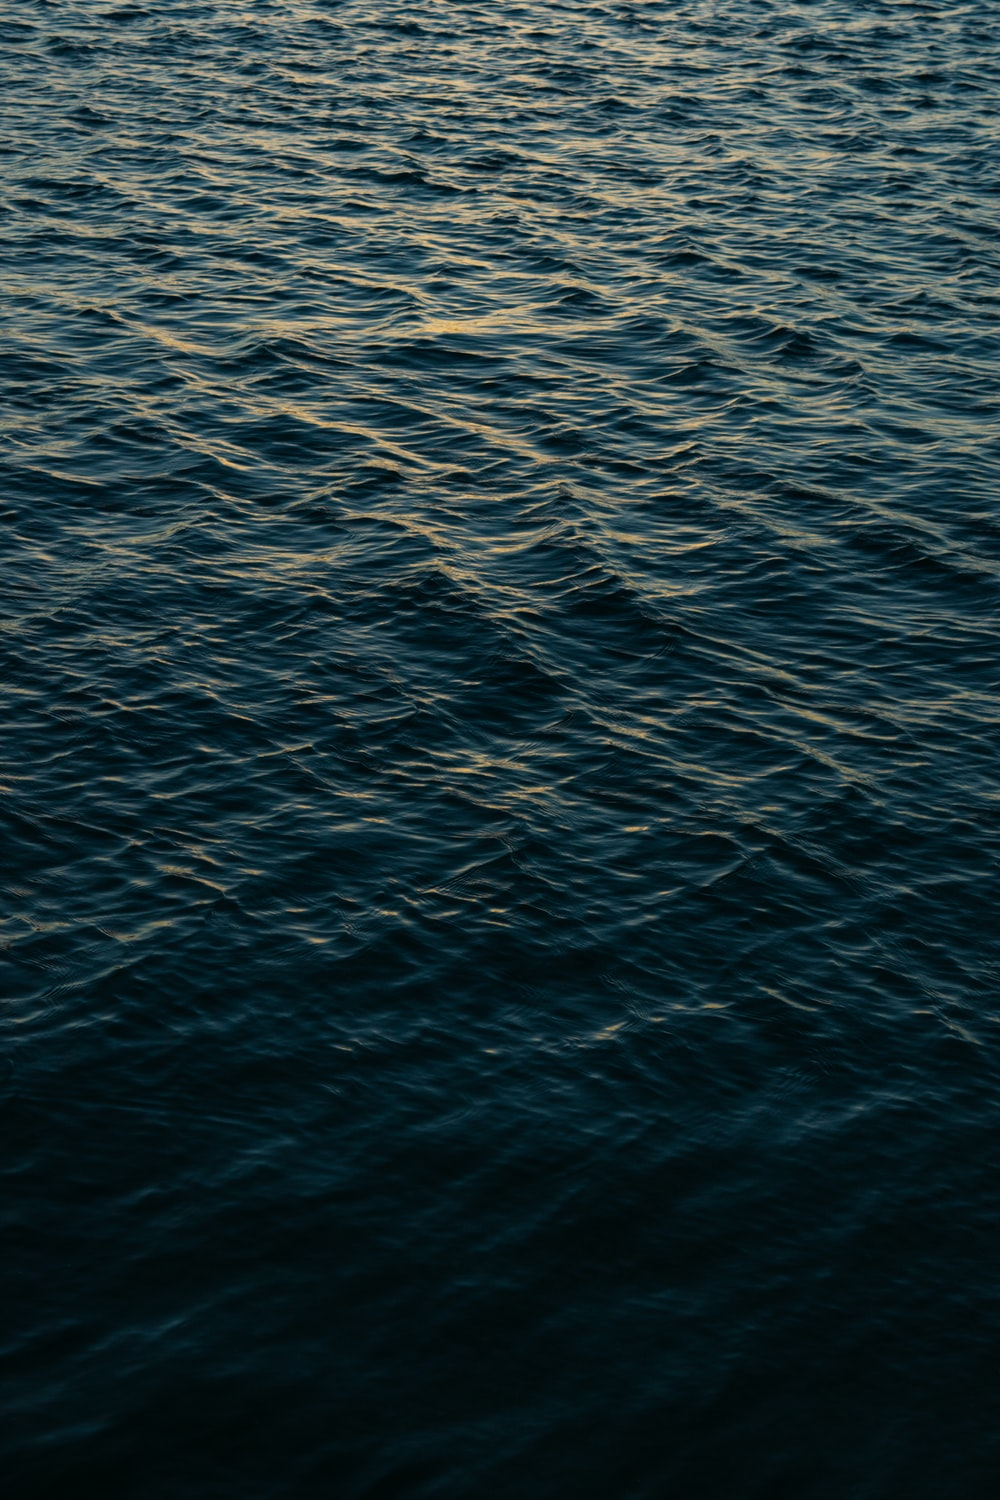 blue water pictures hd download free images on unsplash